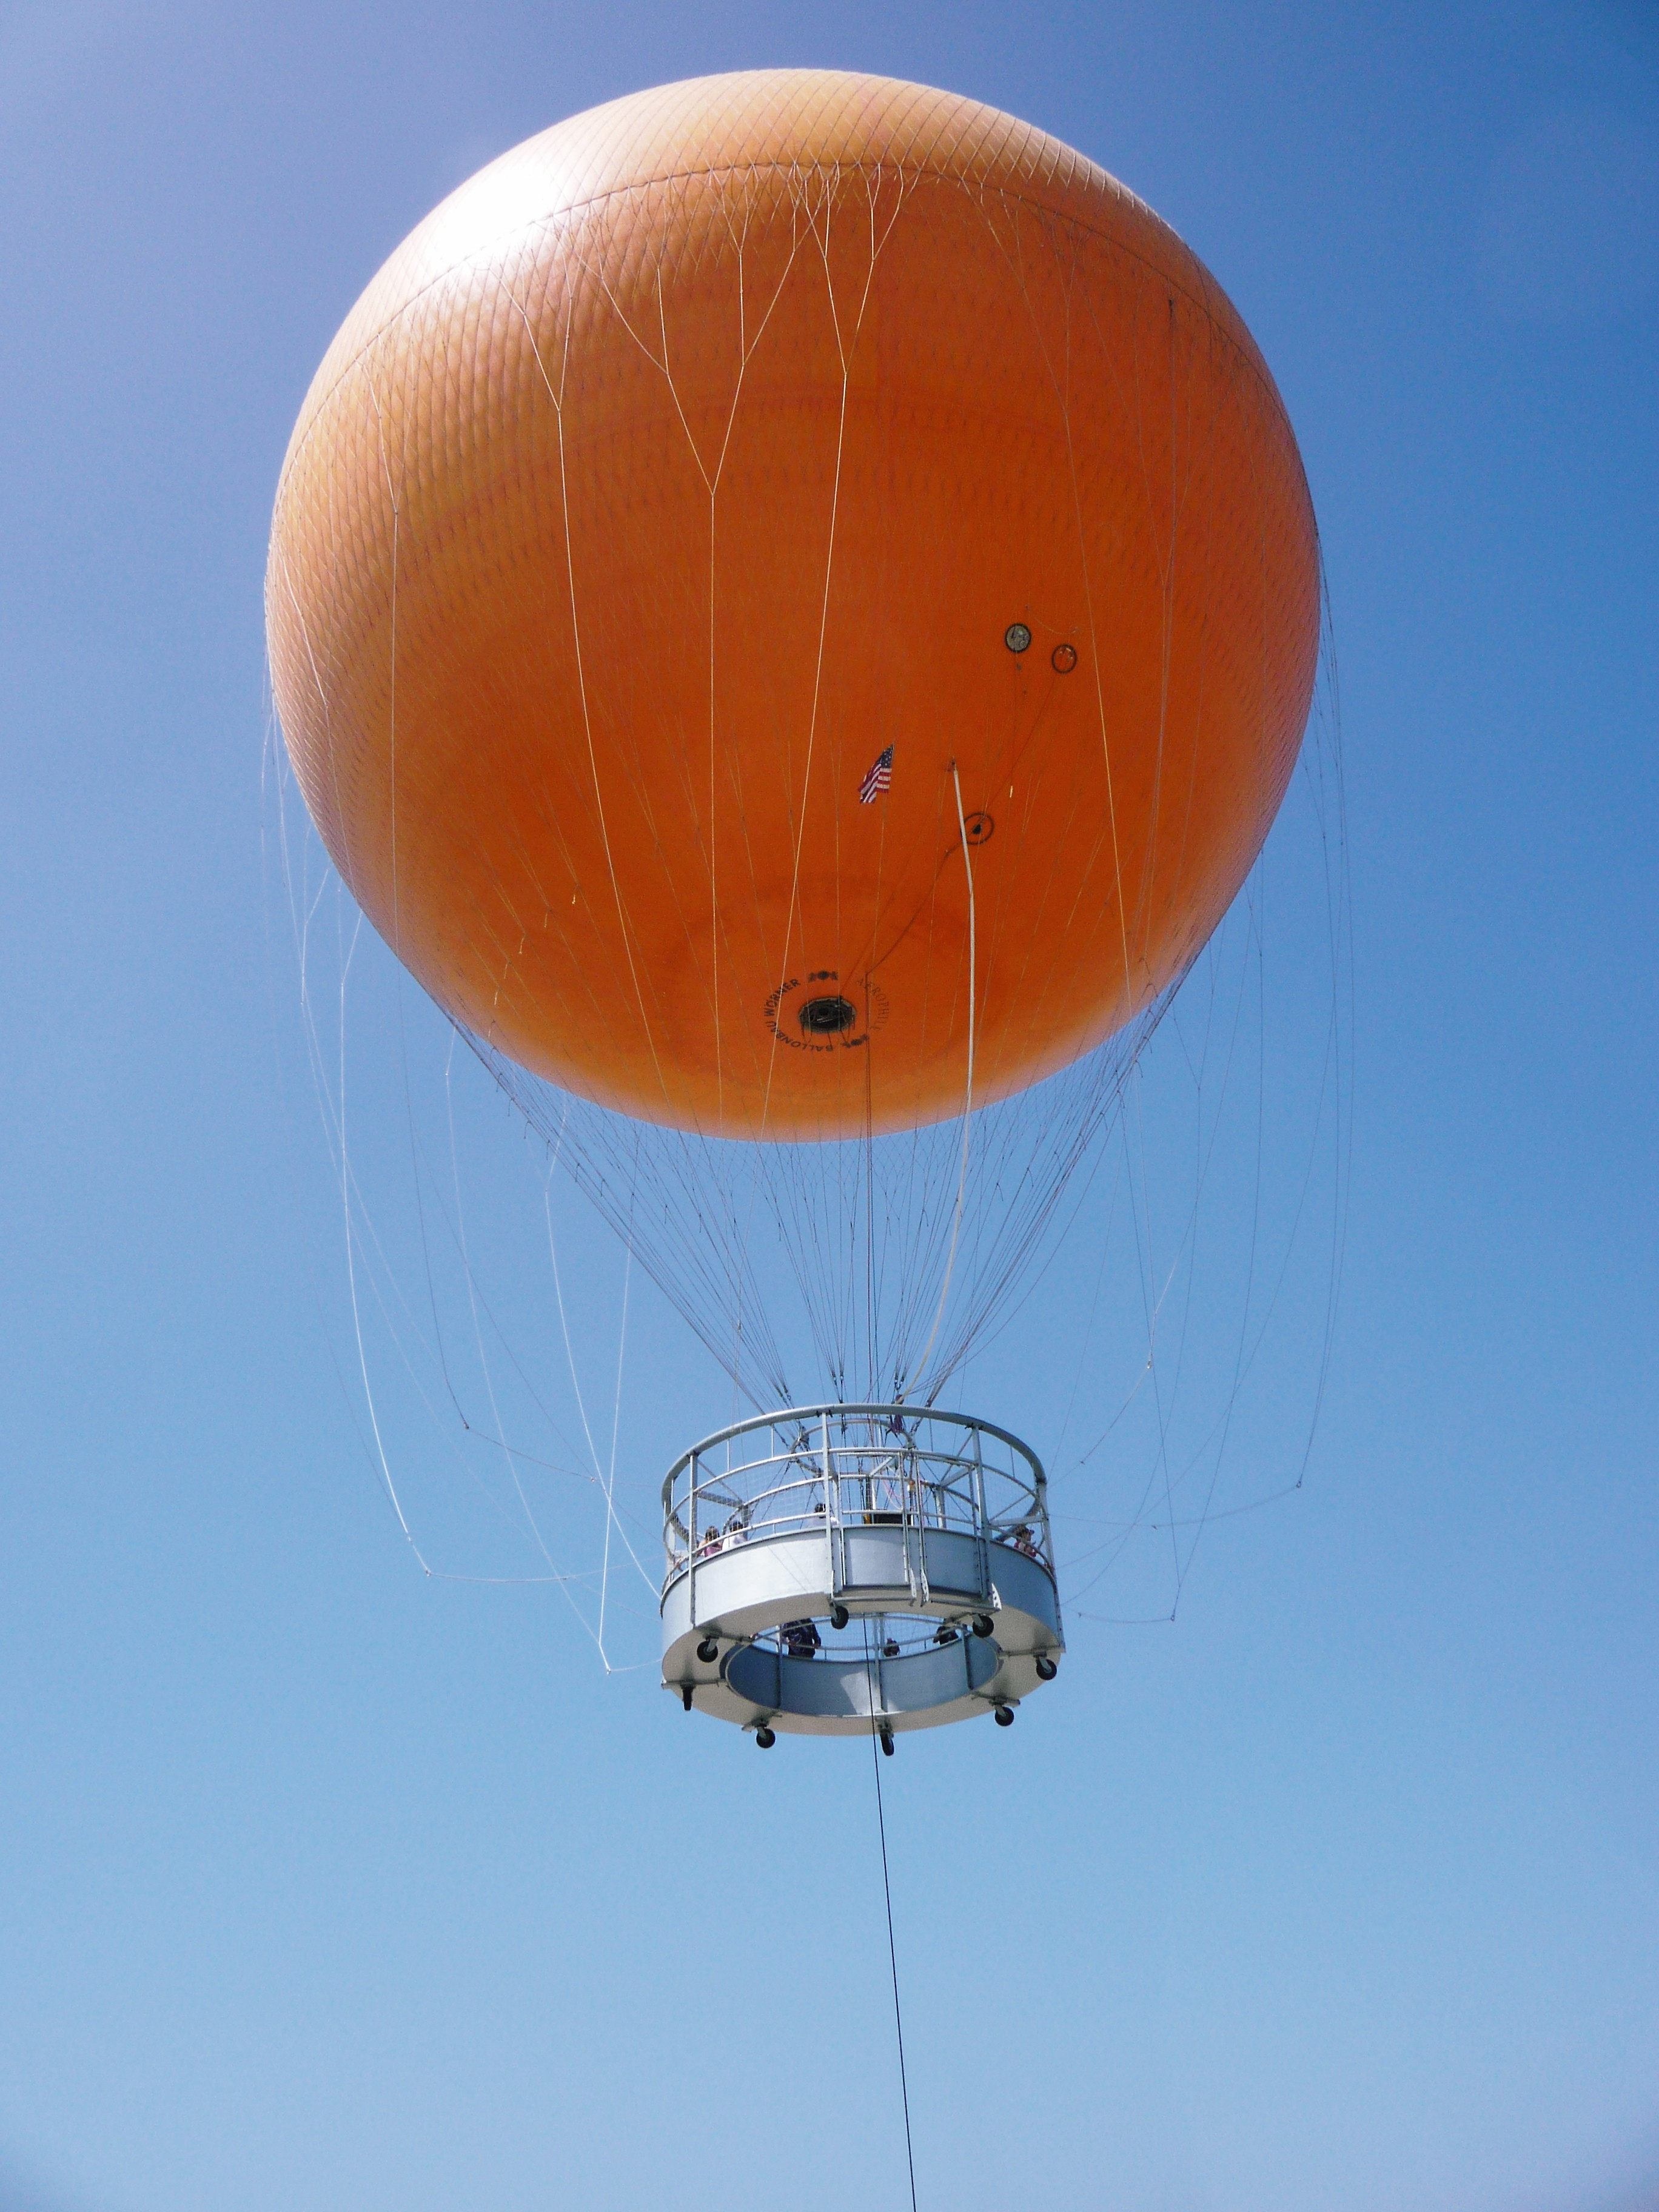 Moored balloon - Wikipedia, the free encyclopedia